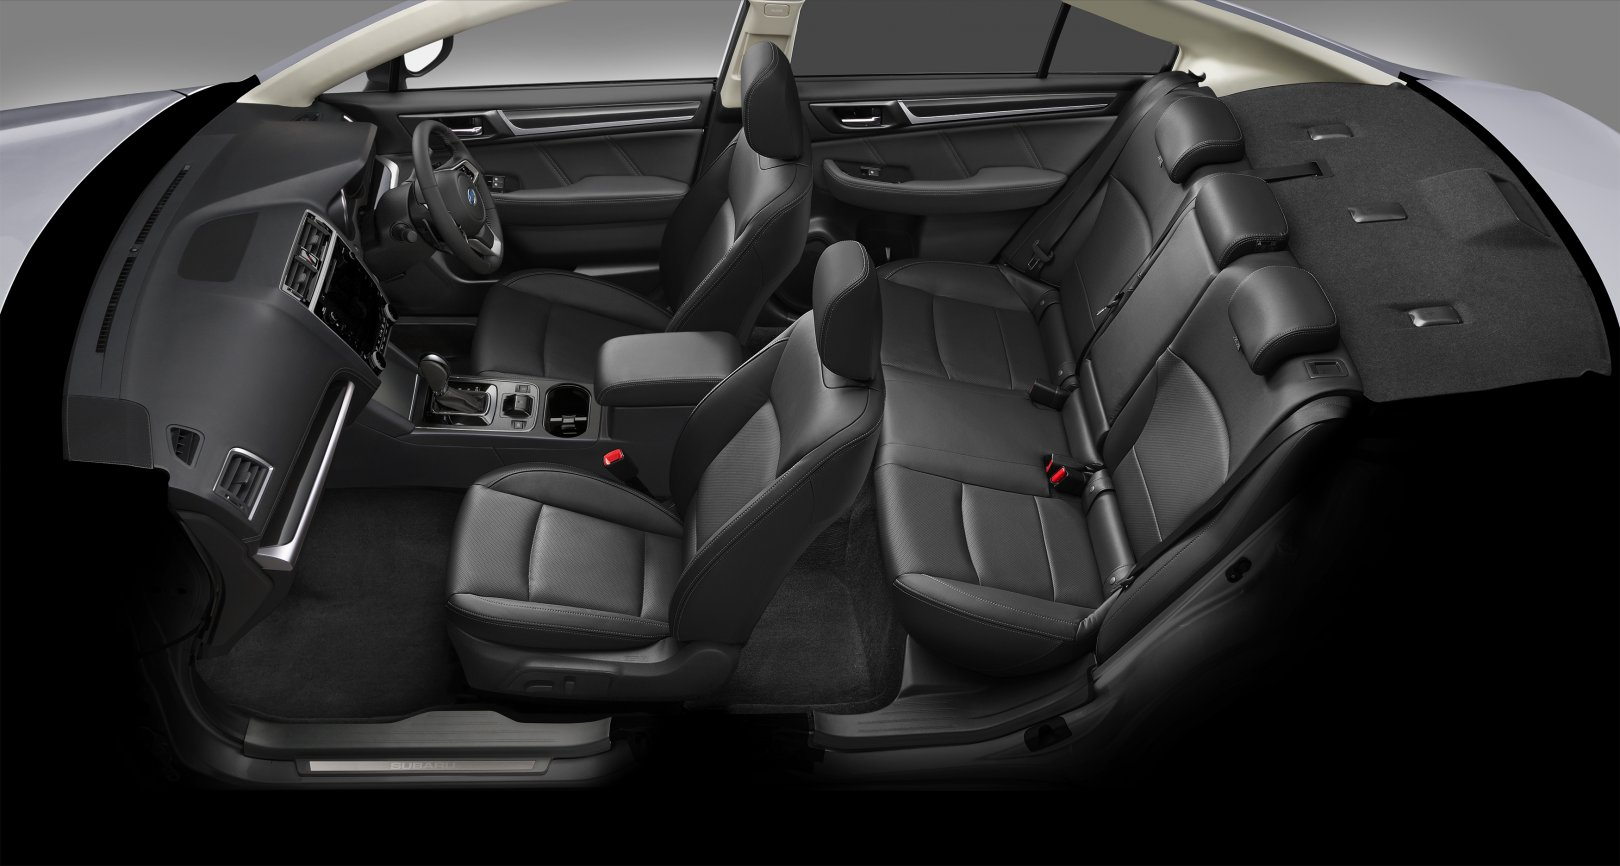 2018 Legacy interior side view